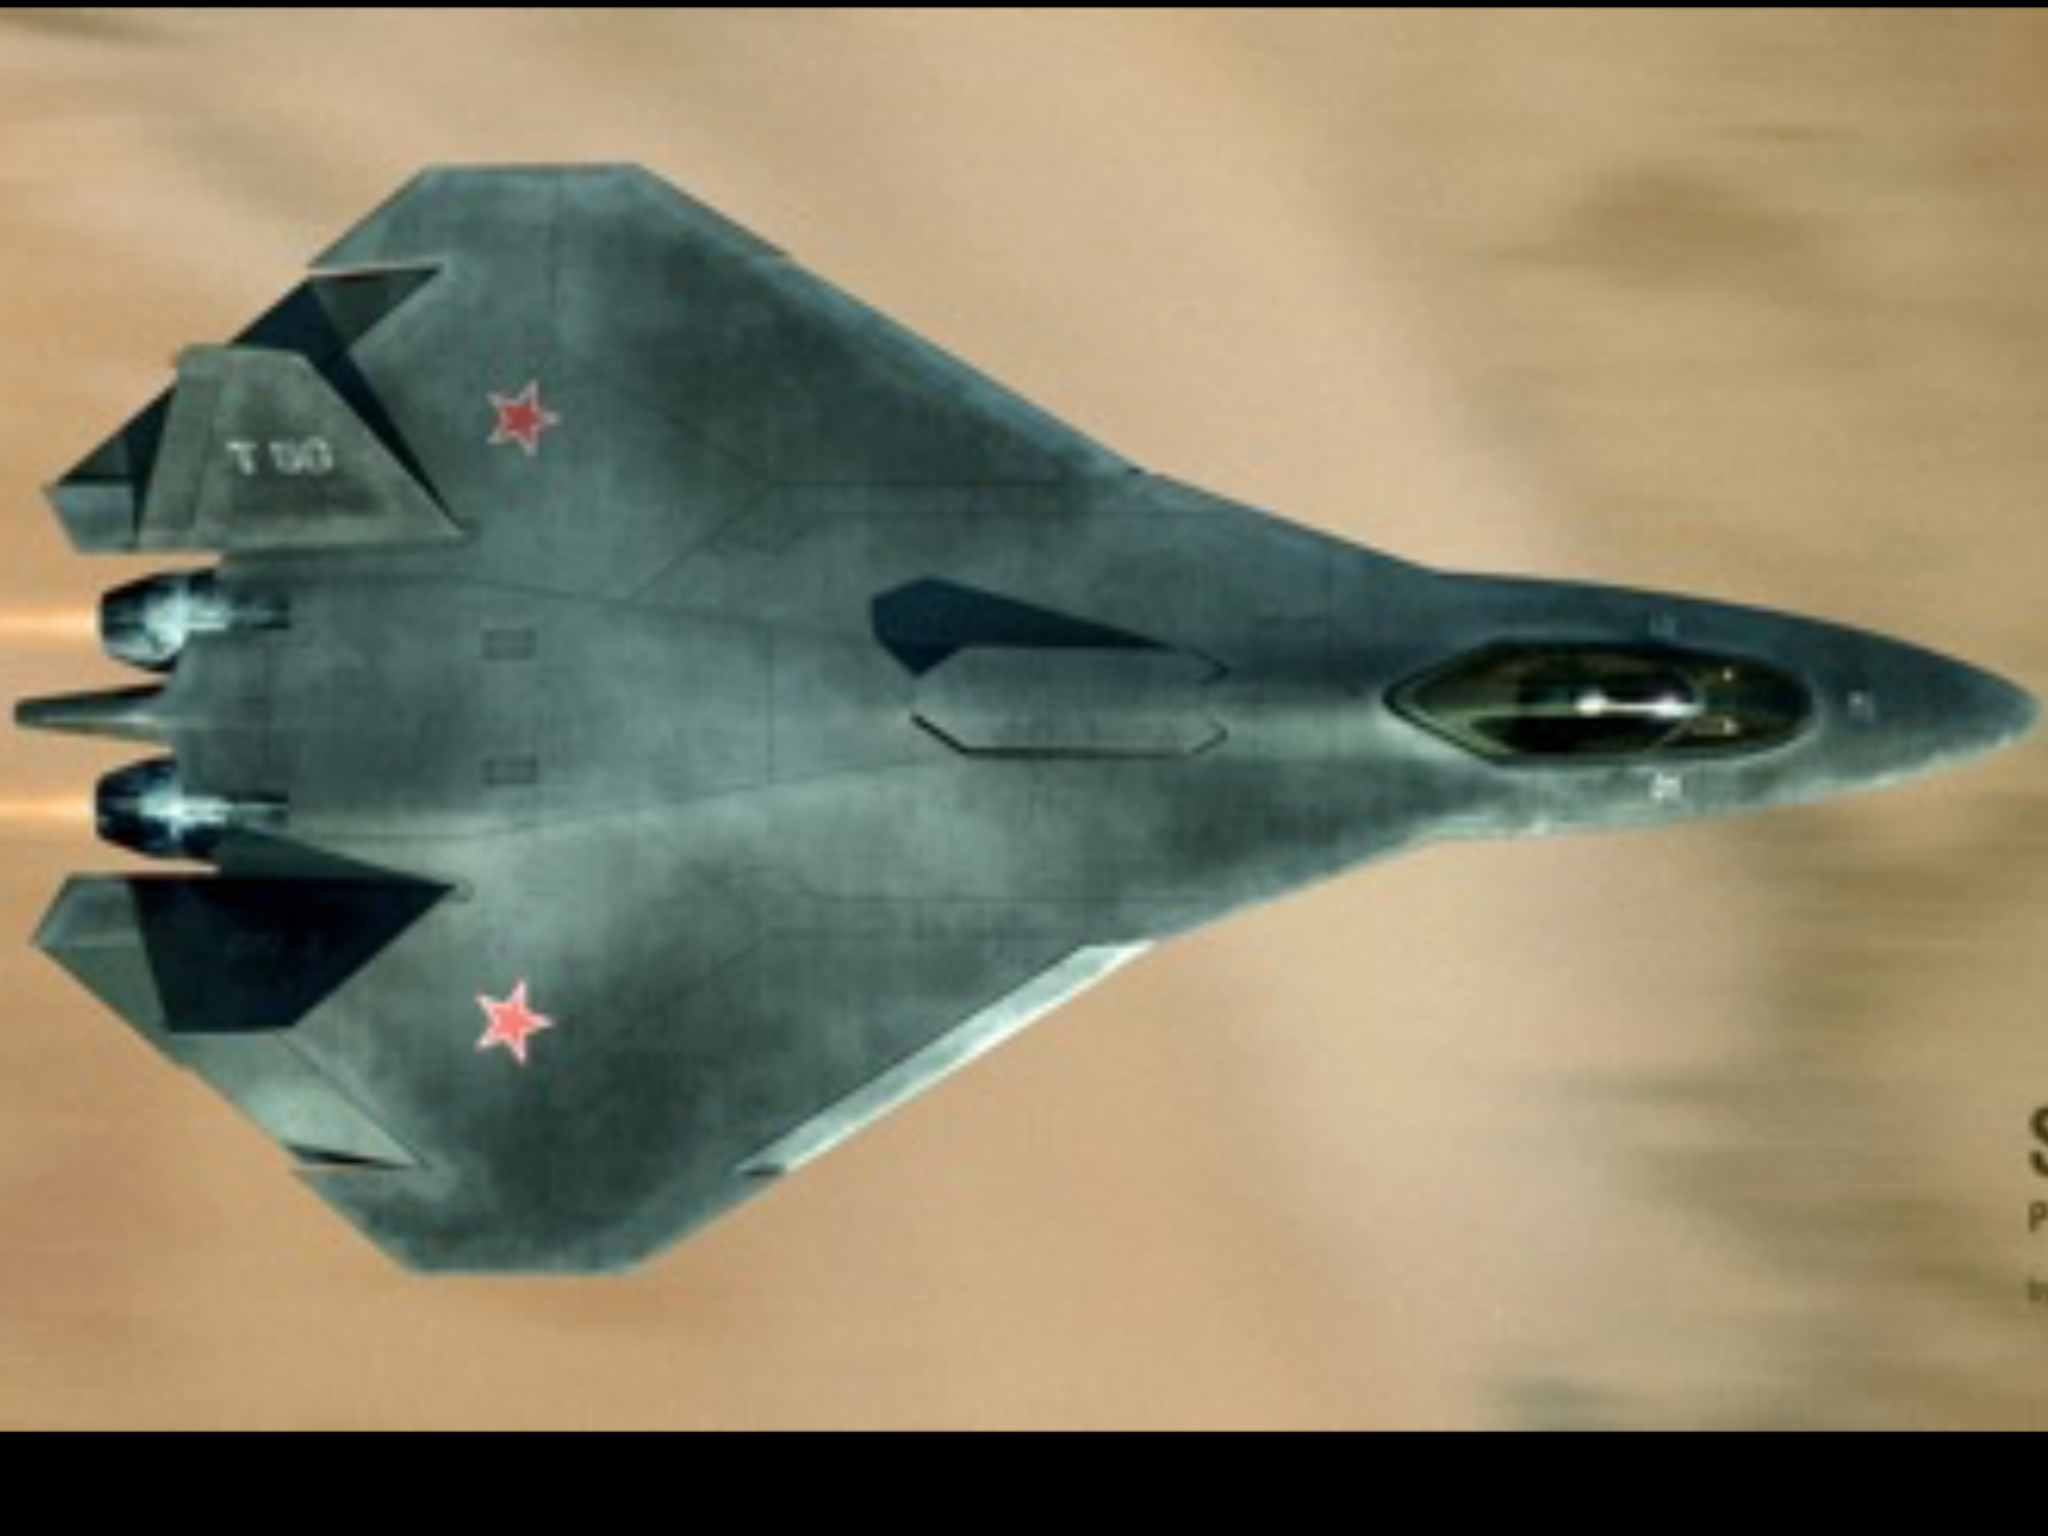 With the recent advances in technology and design aircraft concepts - Suchoi Pak Fa Is One Of The Most Beloved In Terms Of Design And Capabilites Generation Aerial Jet Fighter